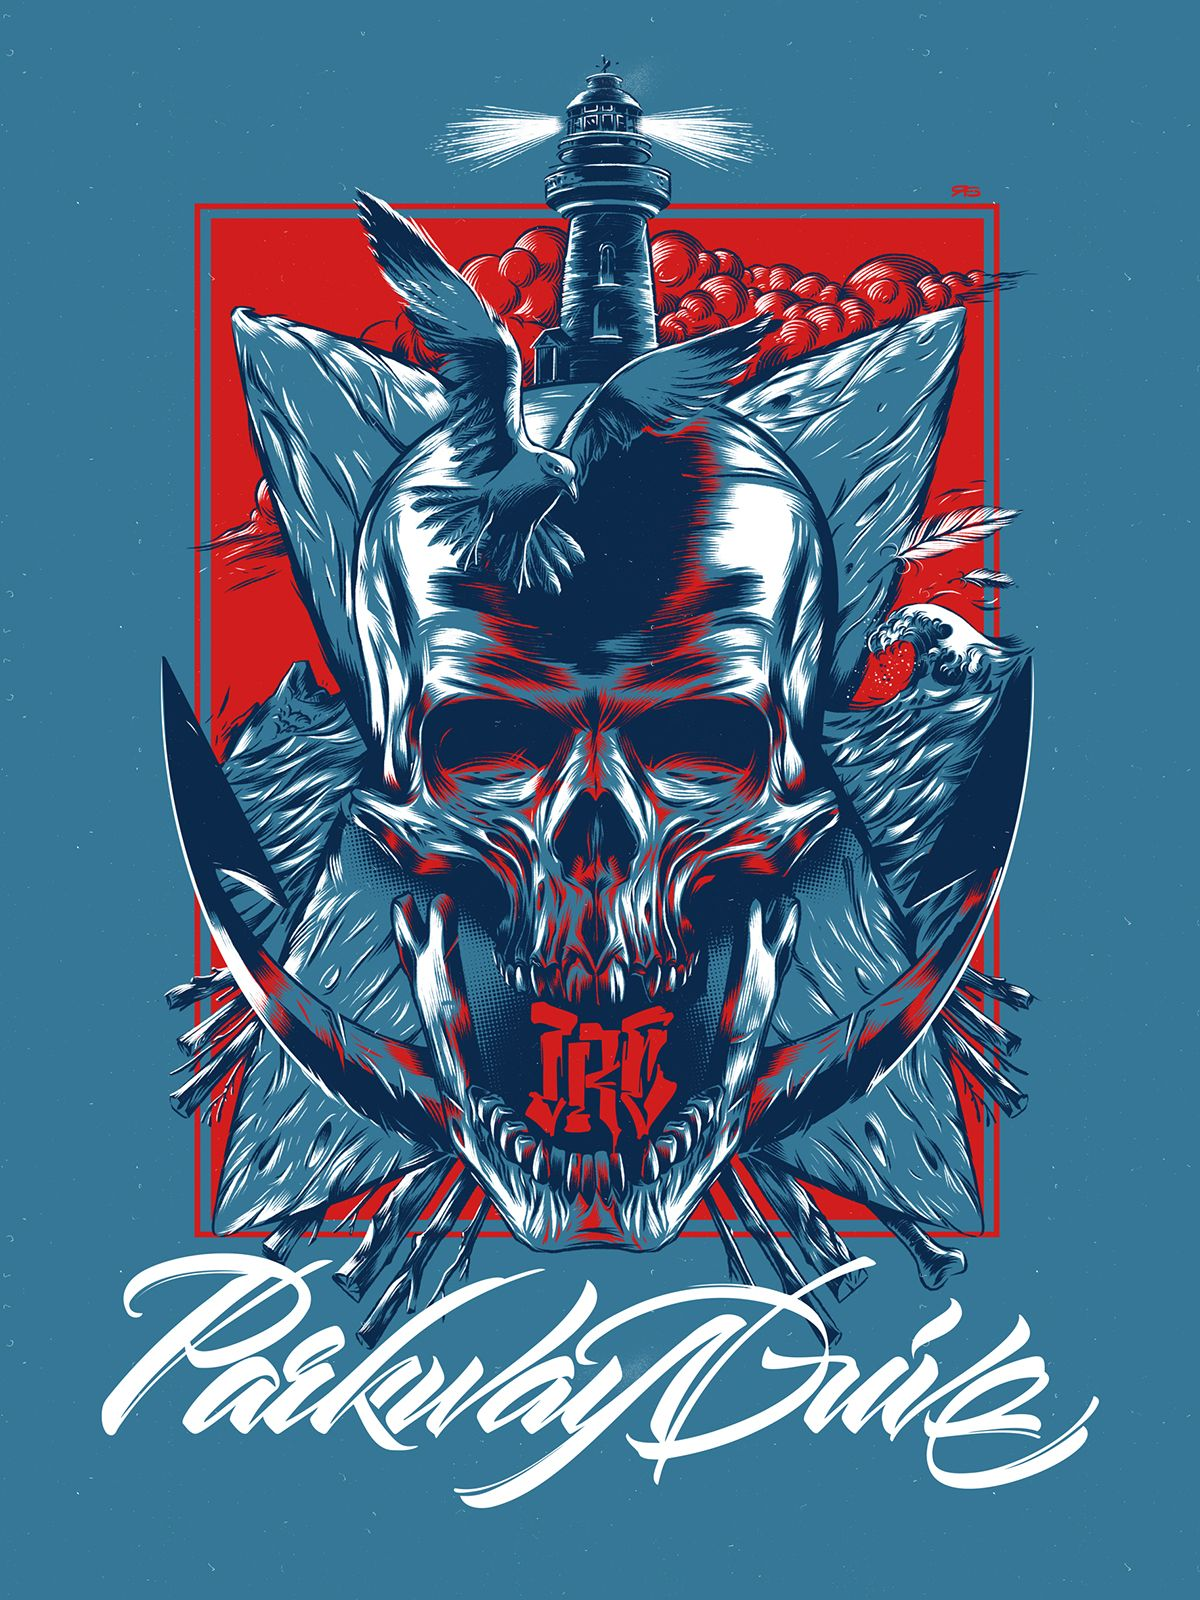 Parkway Drive. Ire. on Behance Parkway drive, Drive